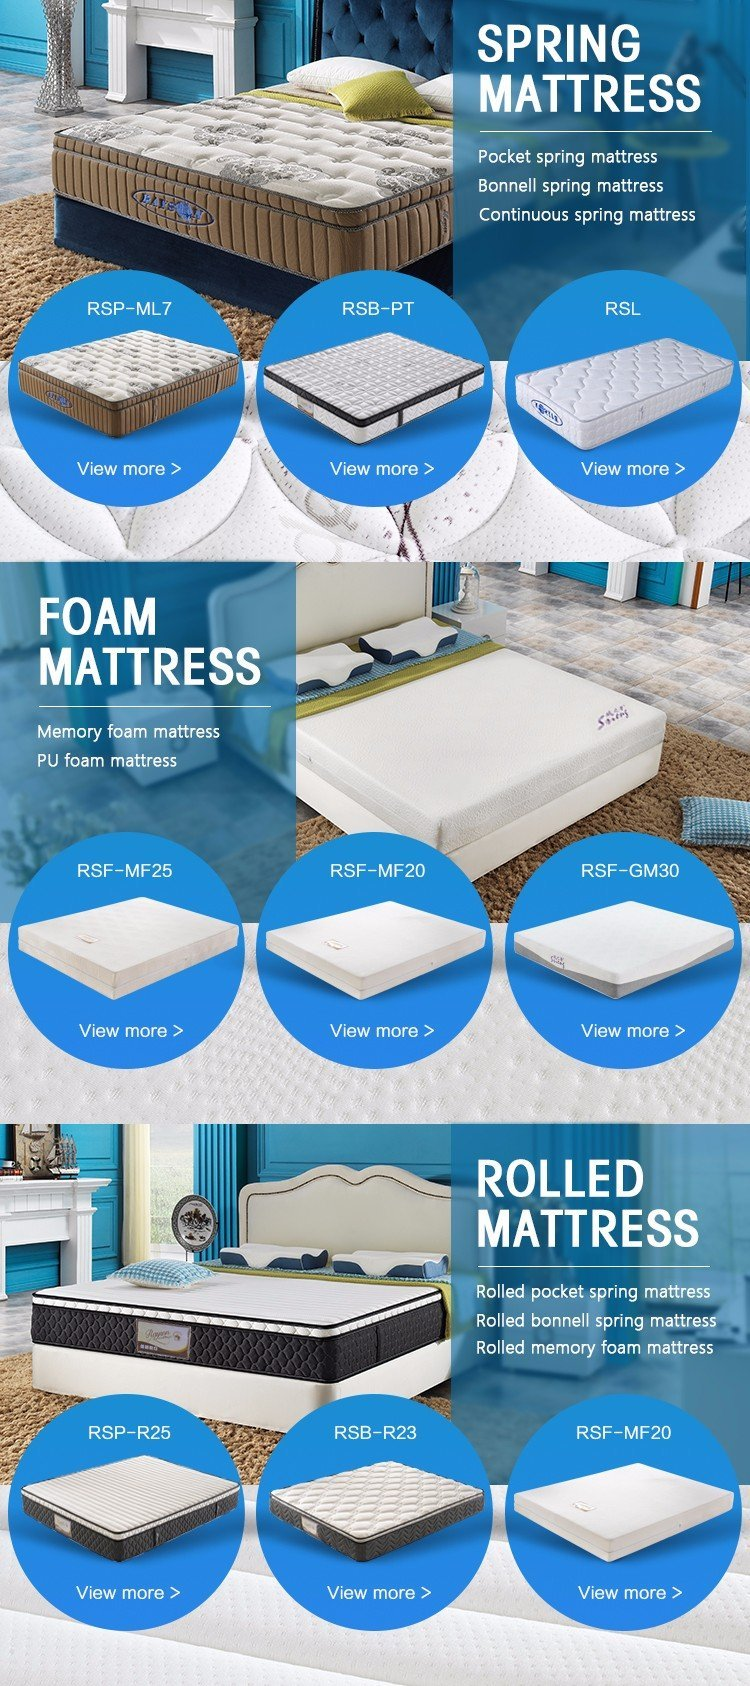 Latest is spring mattress good for health life Suppliers